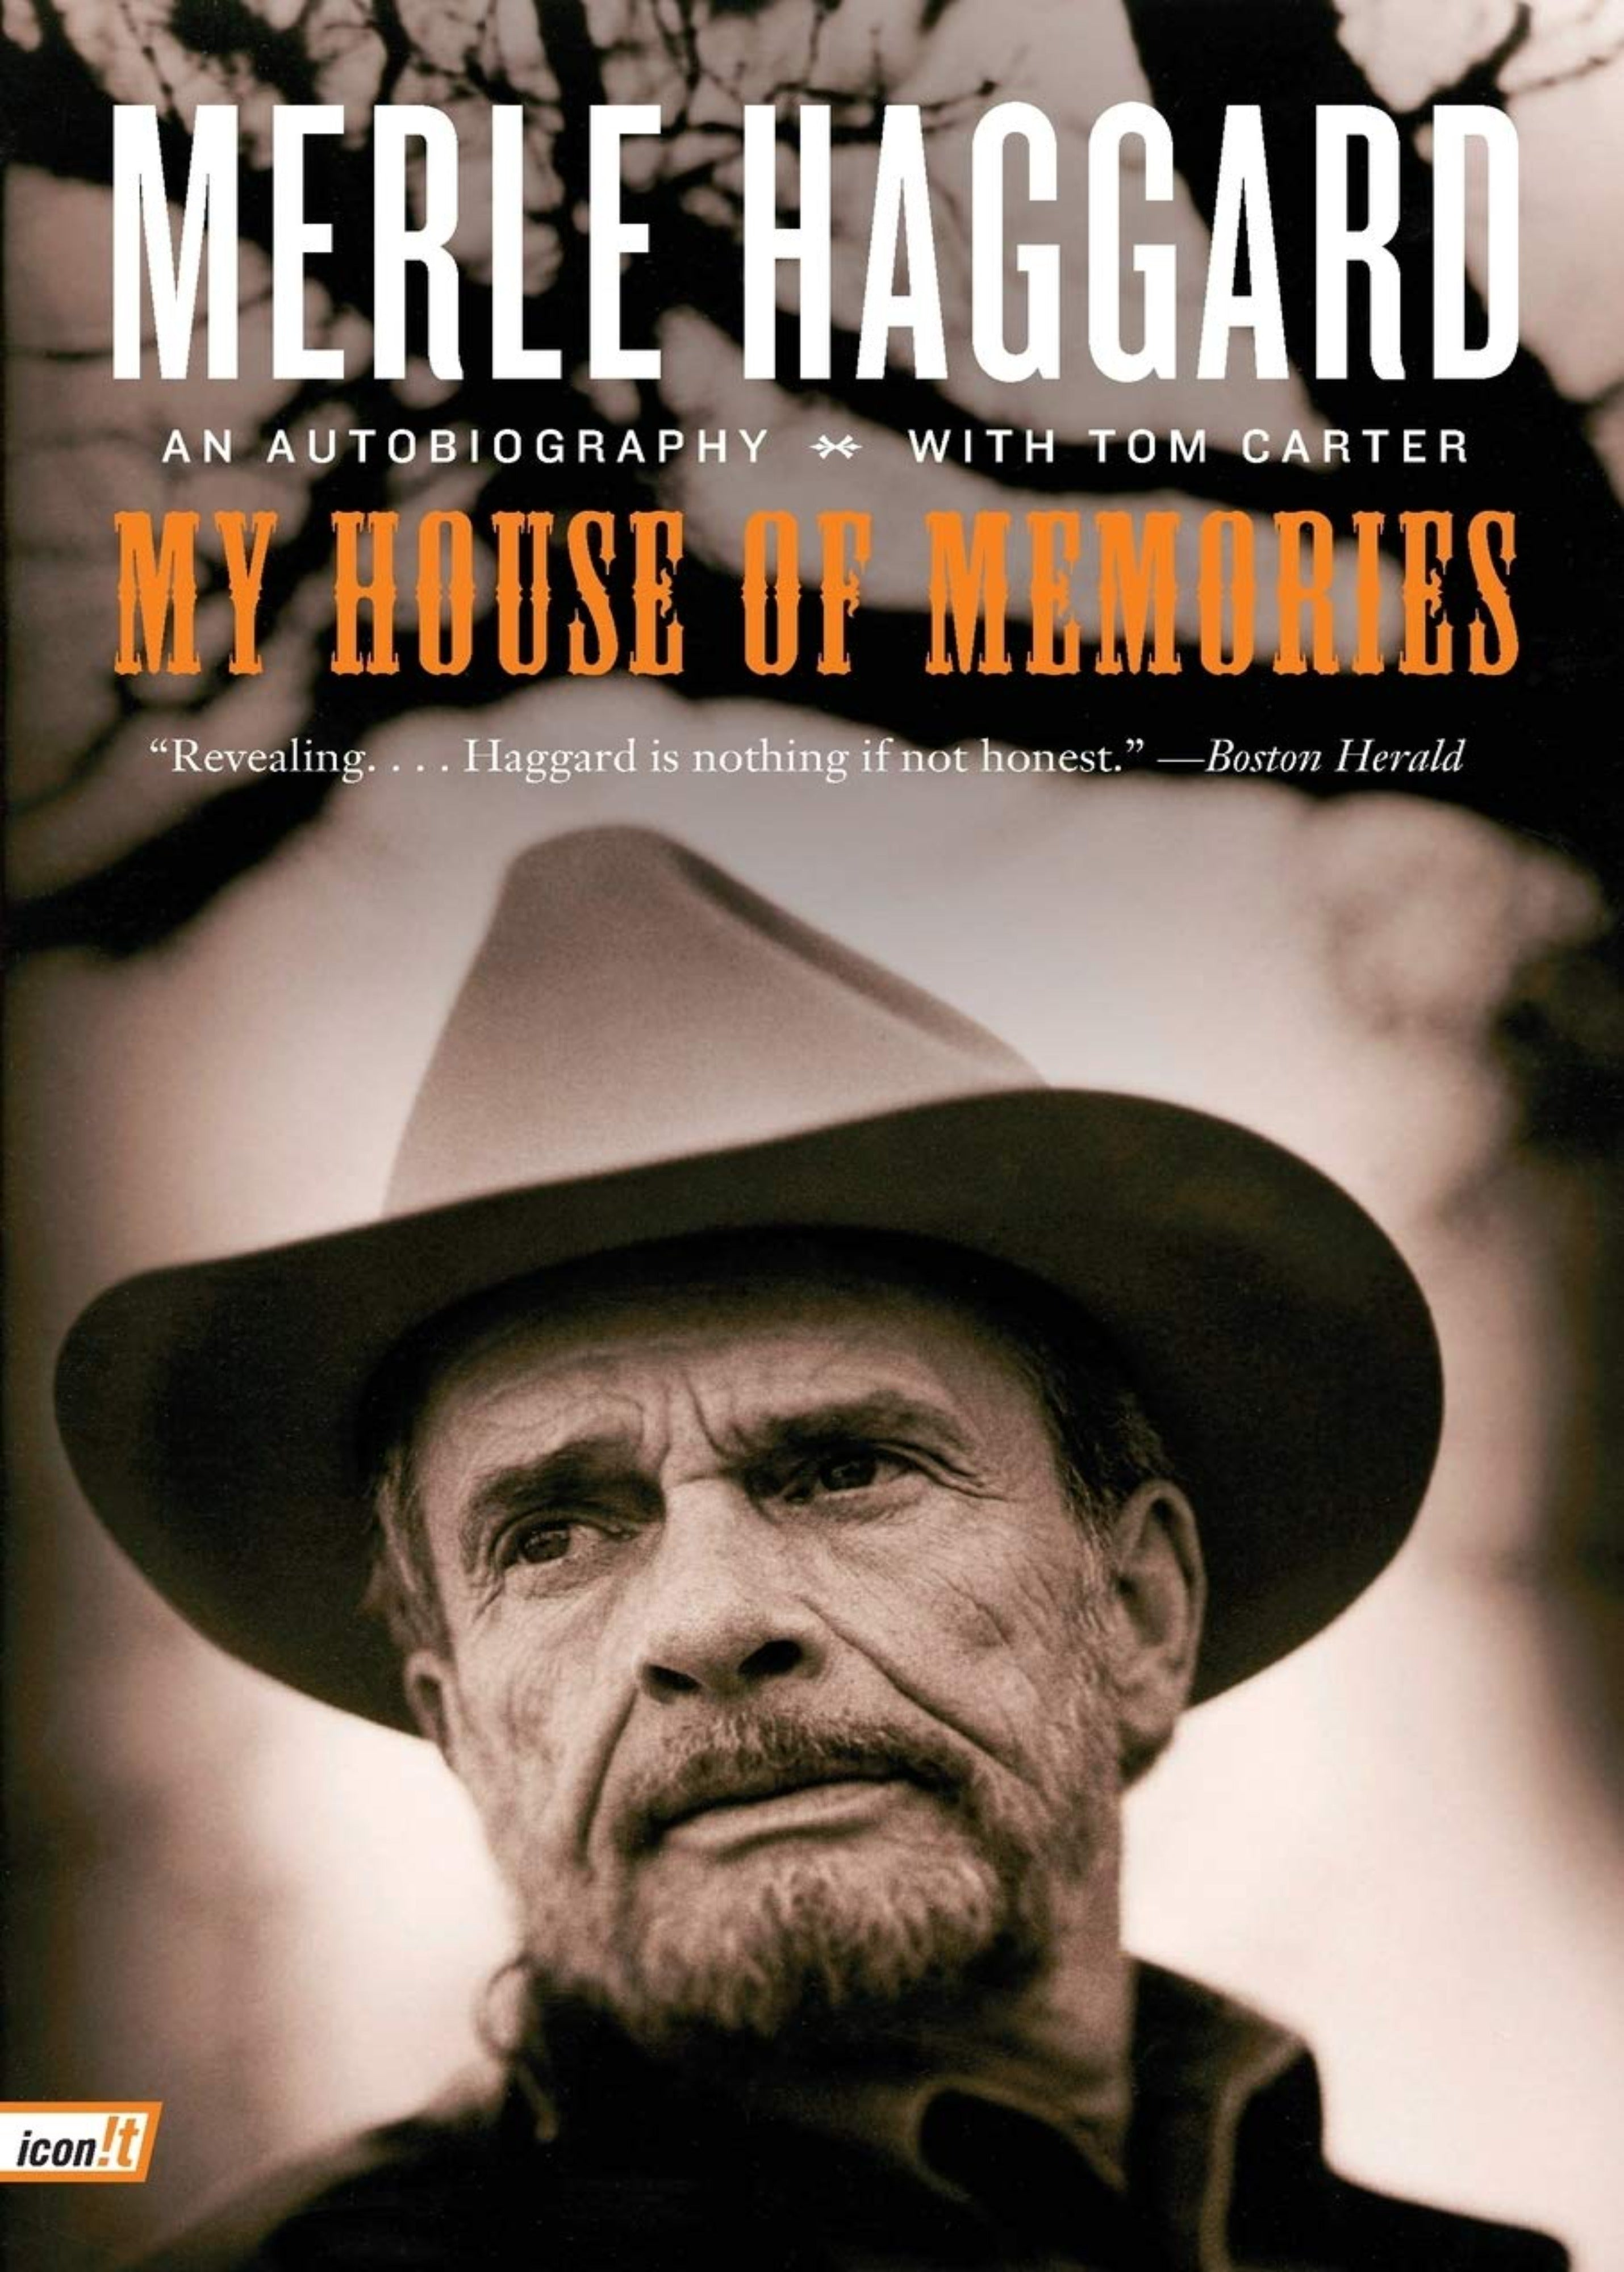 My House of Memories: An Autobiography (Merle Haggard)